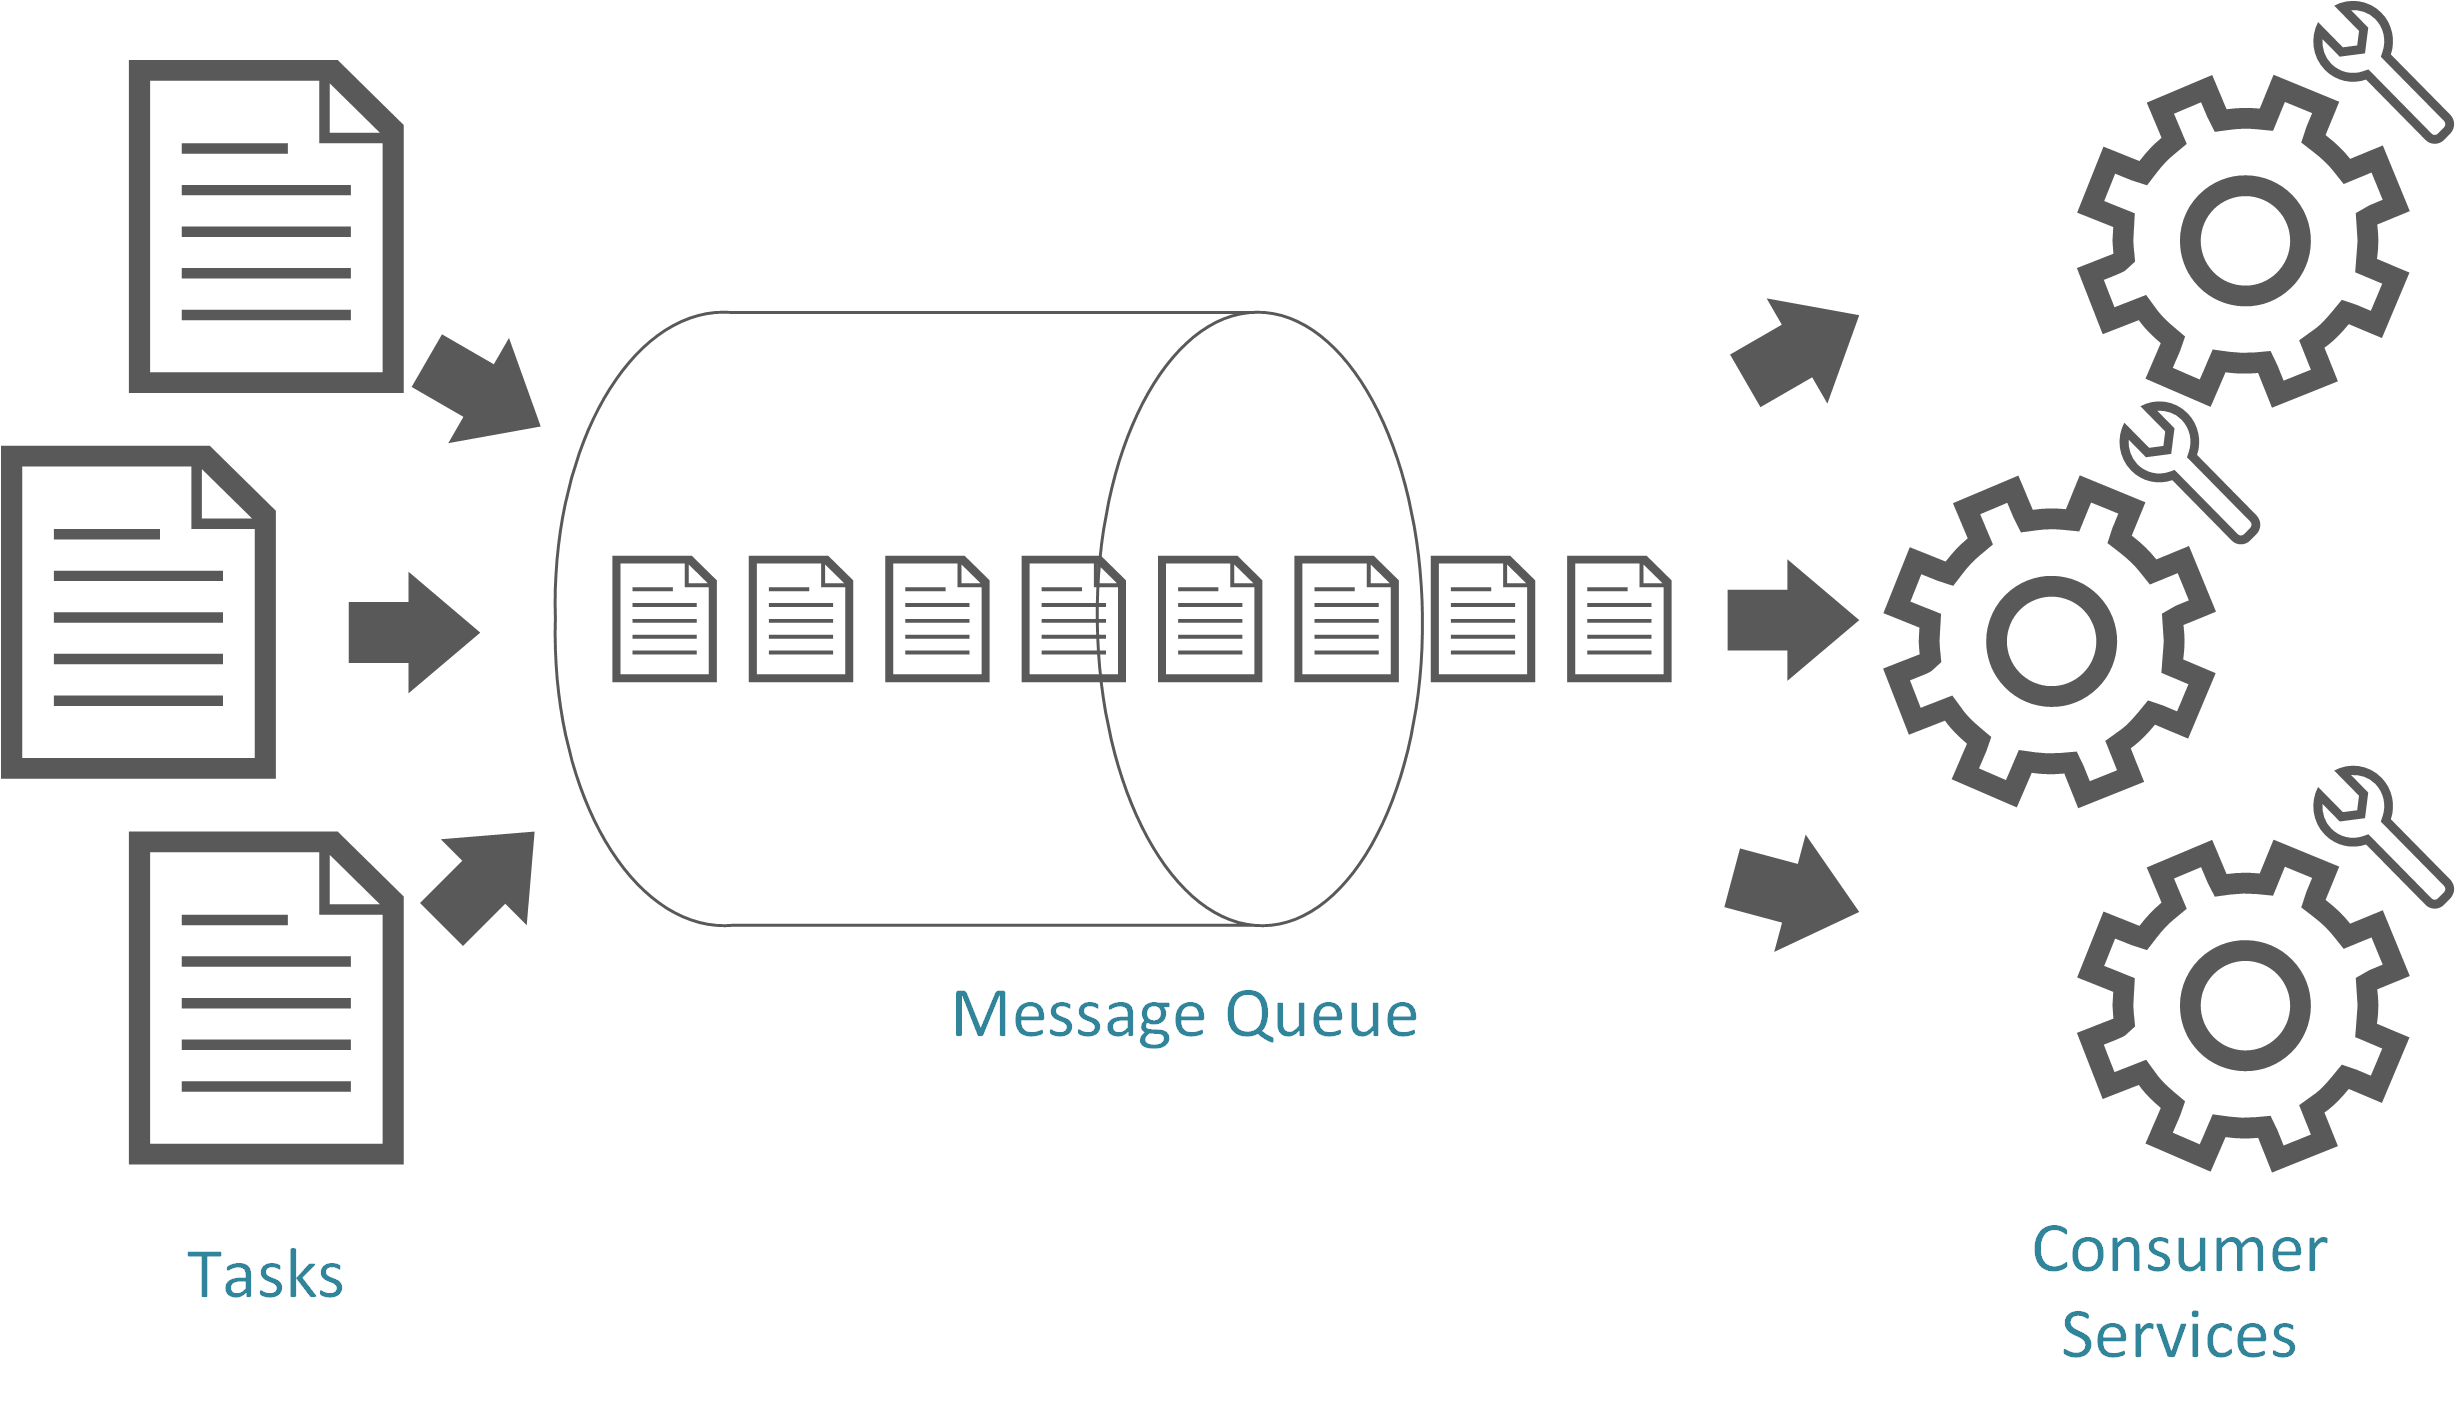 Using a Message Queue to Distribute Work to a Pool of Consumer Services